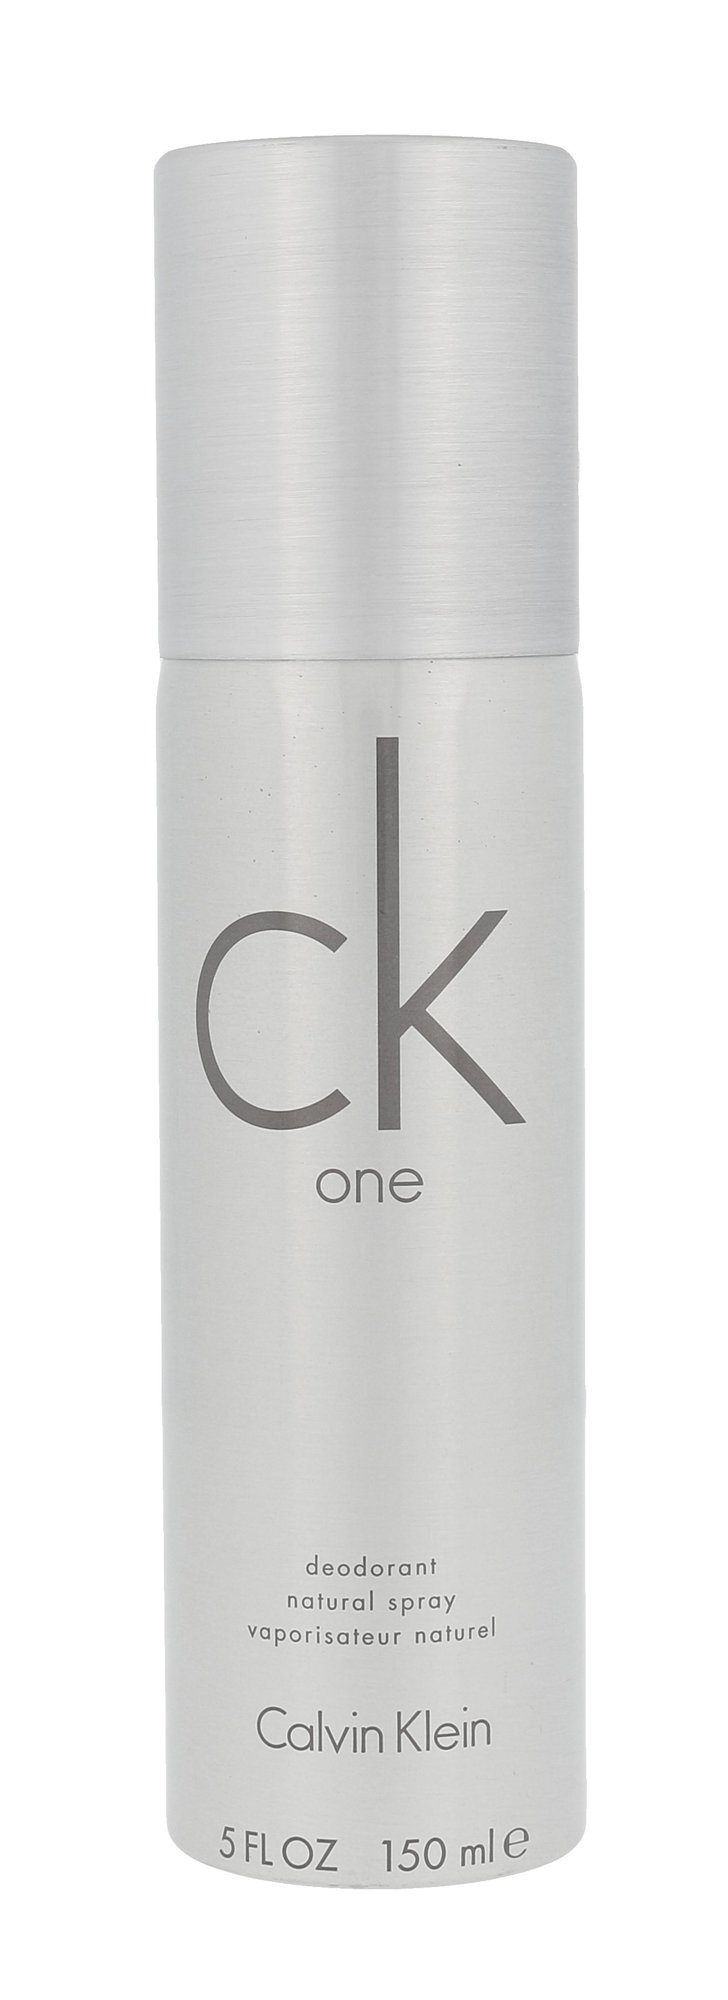 Calvin Klein CK One Deodorant 150ml